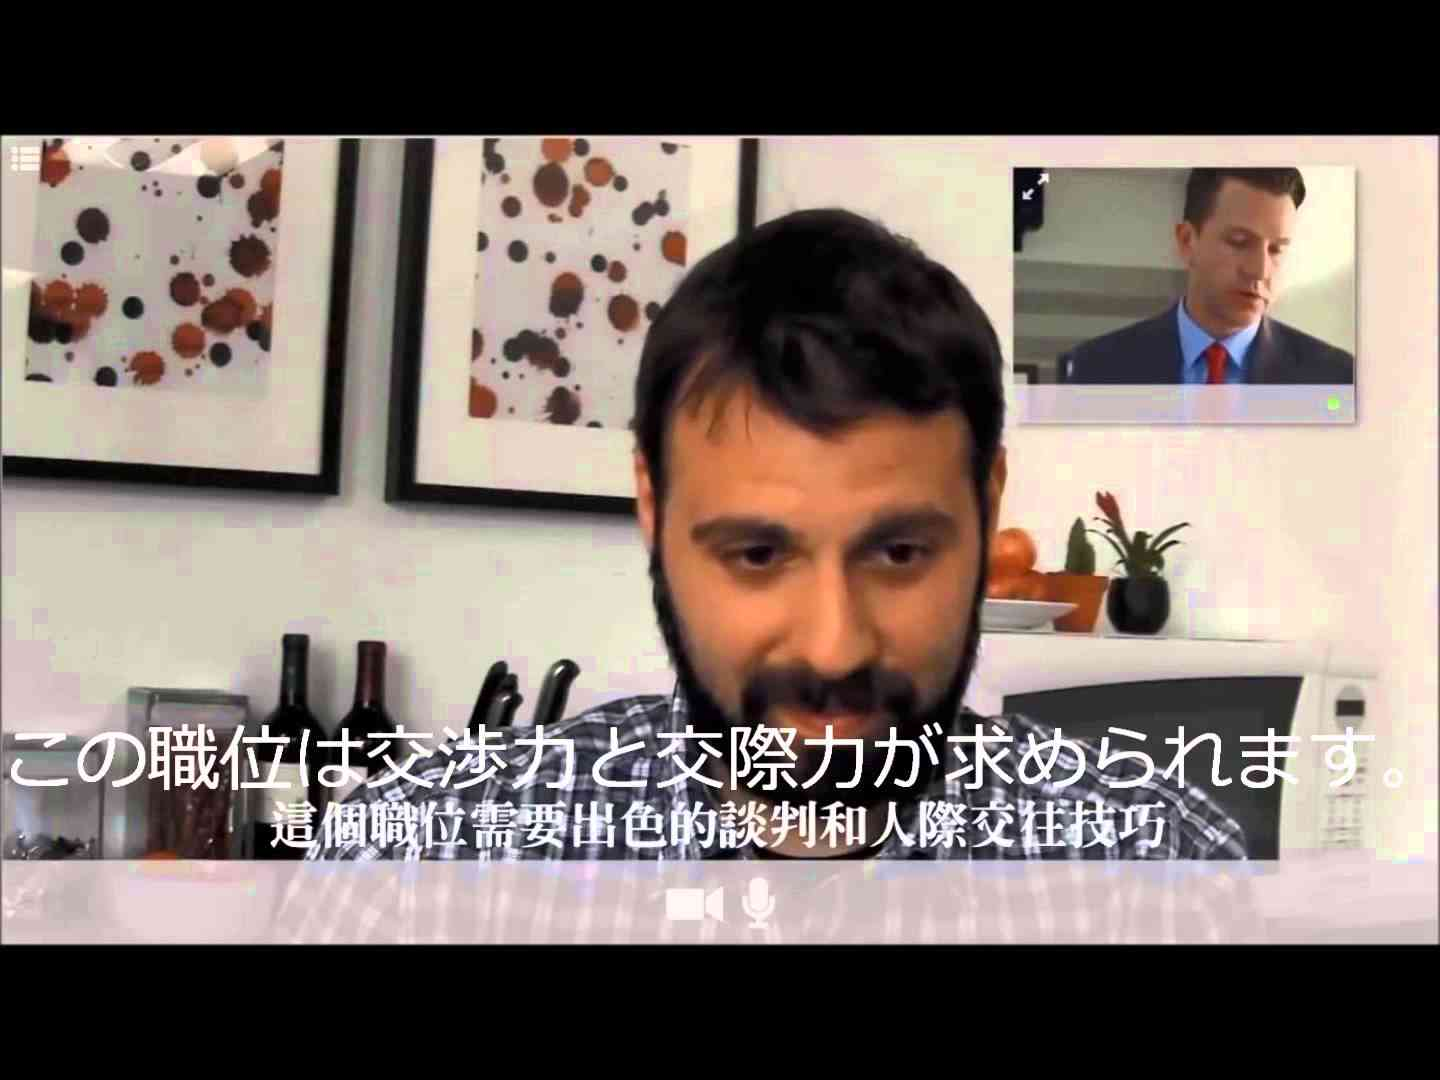 World's Toughest Job - #worldstoughestjob -(日本語訳) - YouTube